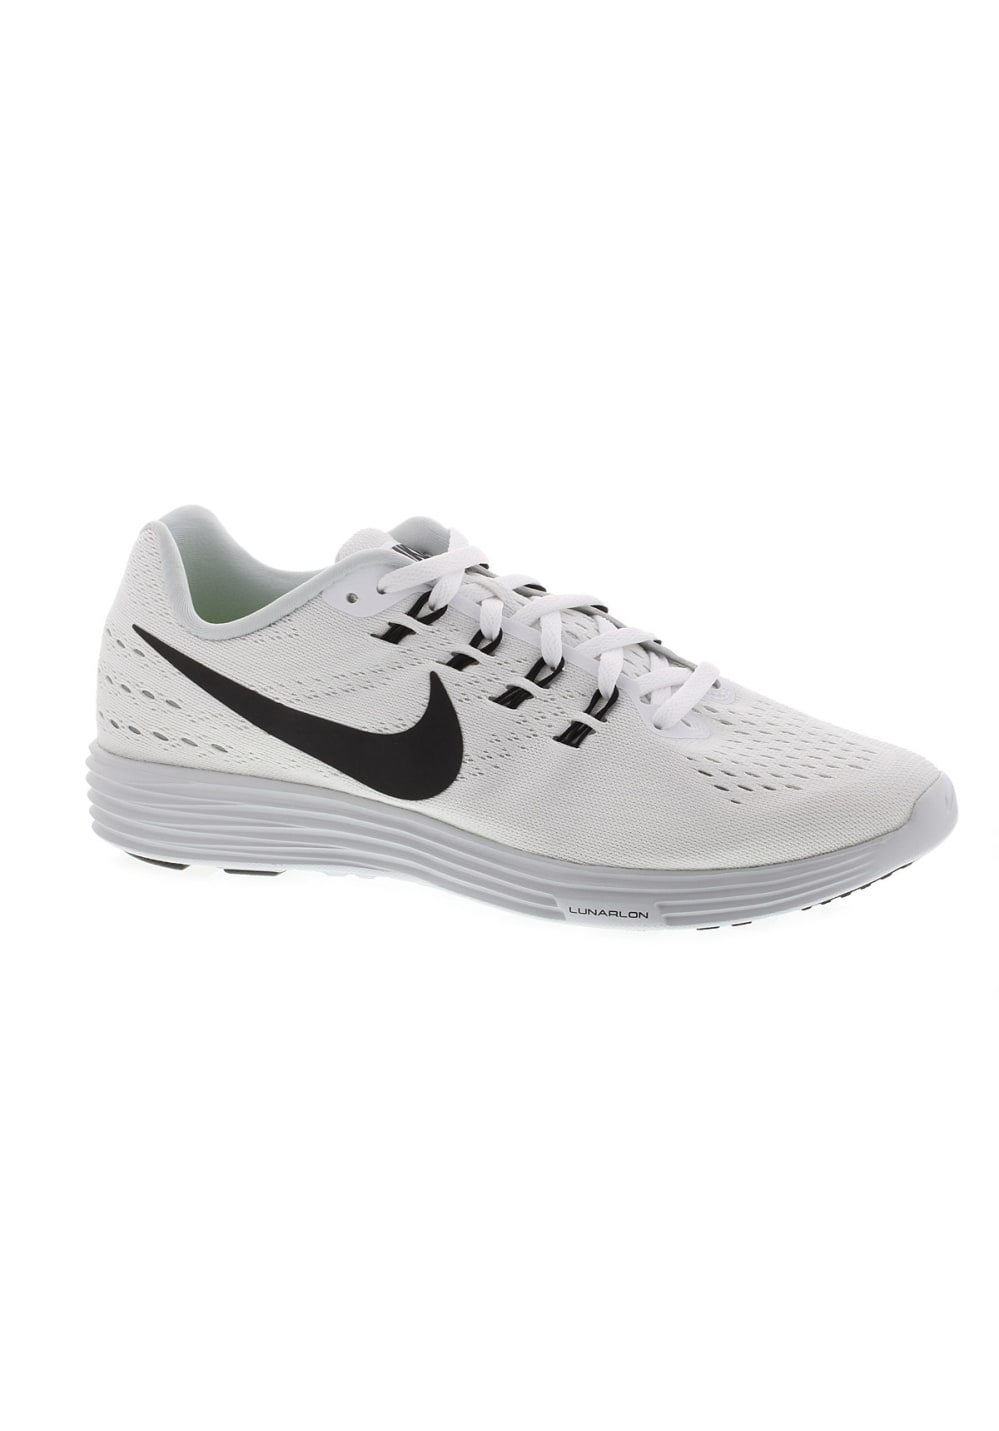 the best attitude 4261c 0f50c Nike Lunartempo 2 - Running shoes for Men - Grey